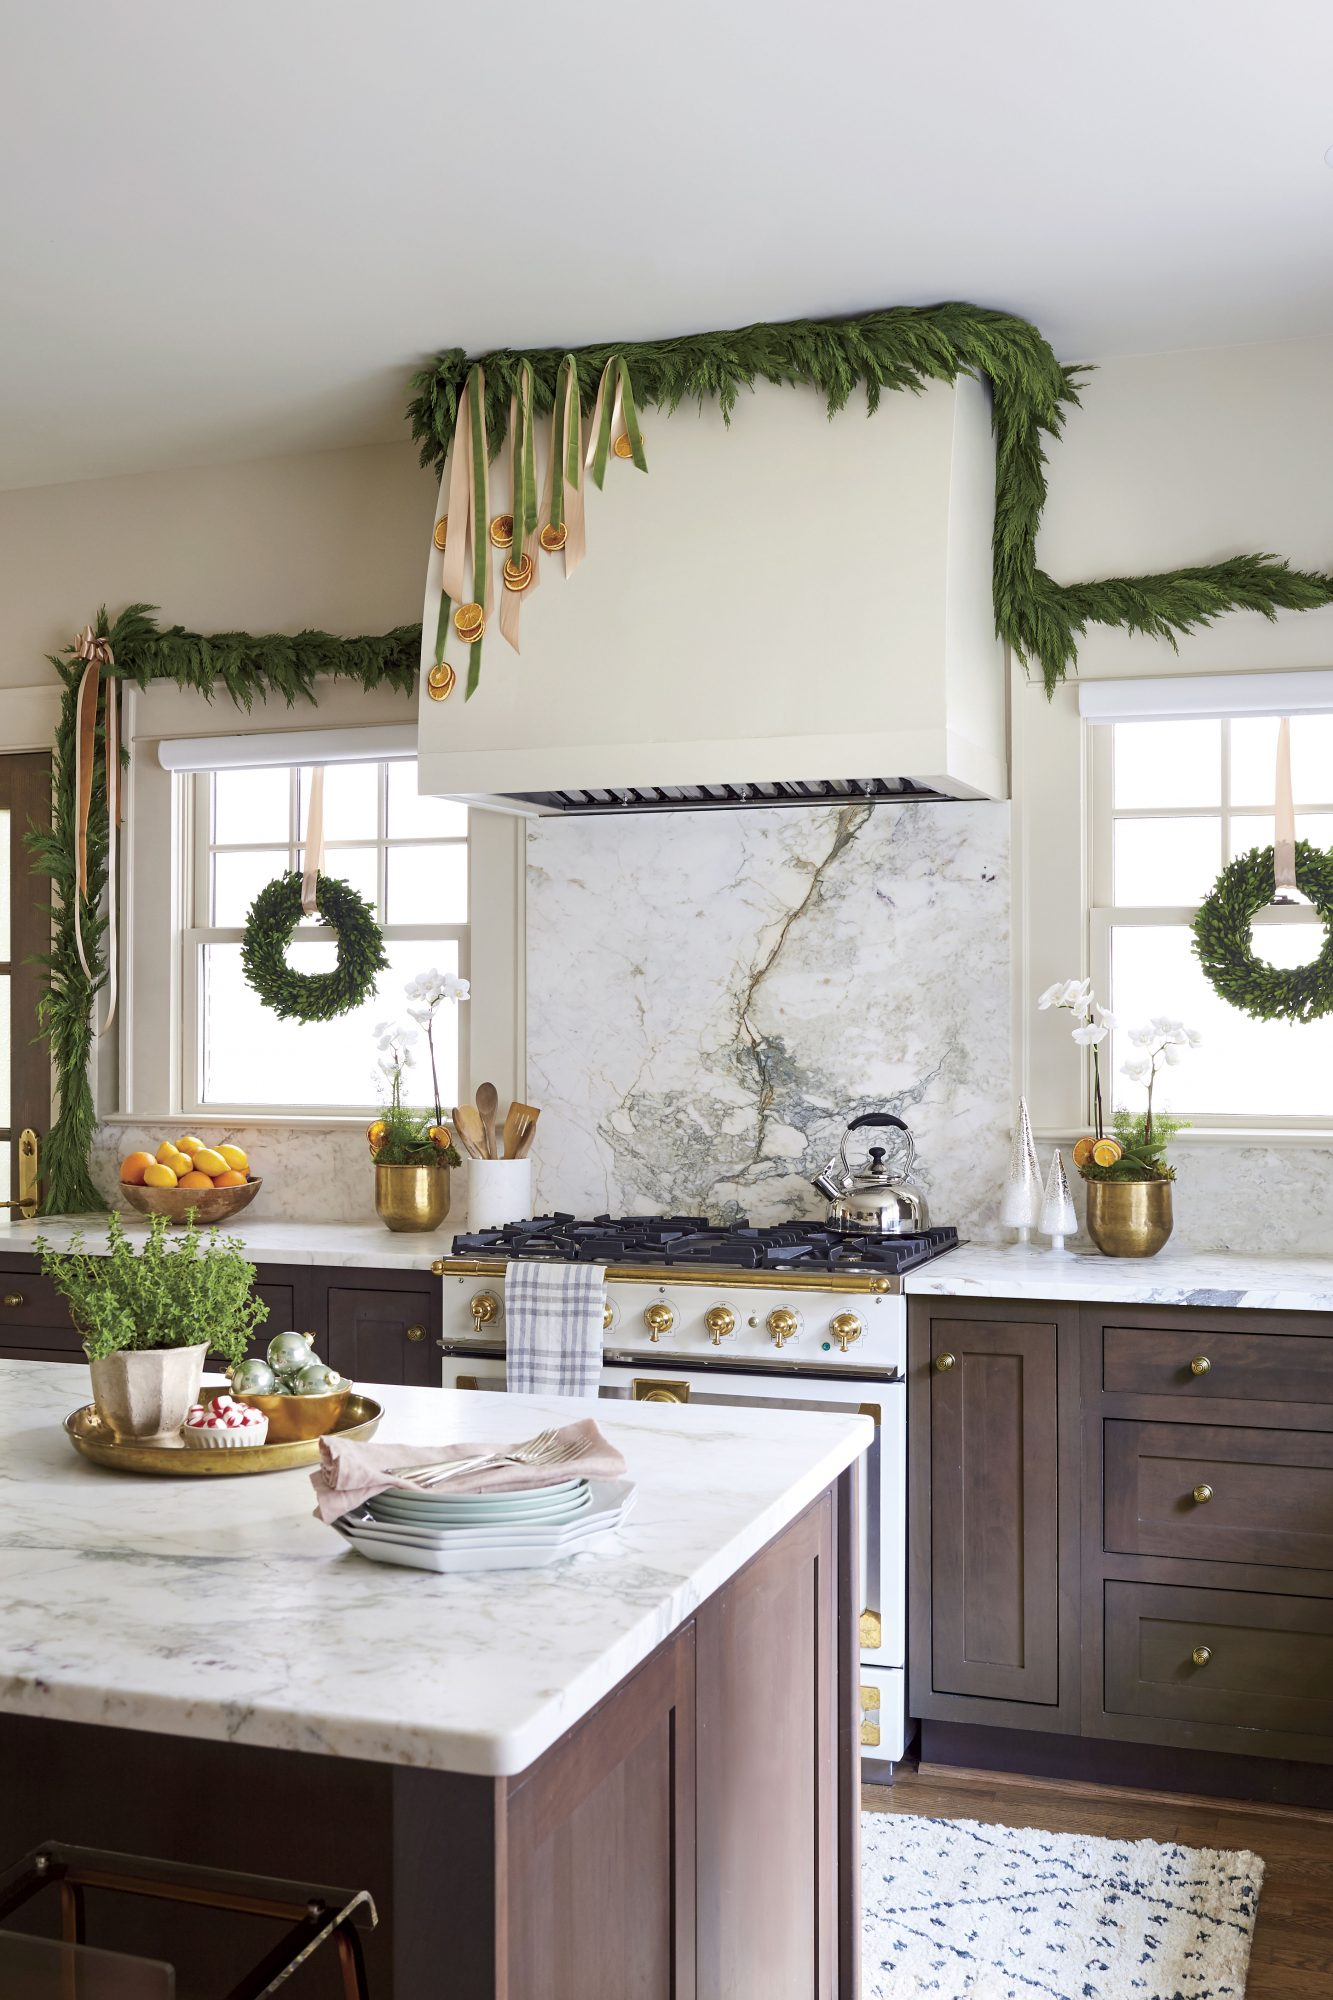 Citrus and Ribbon Garland in Kitchen